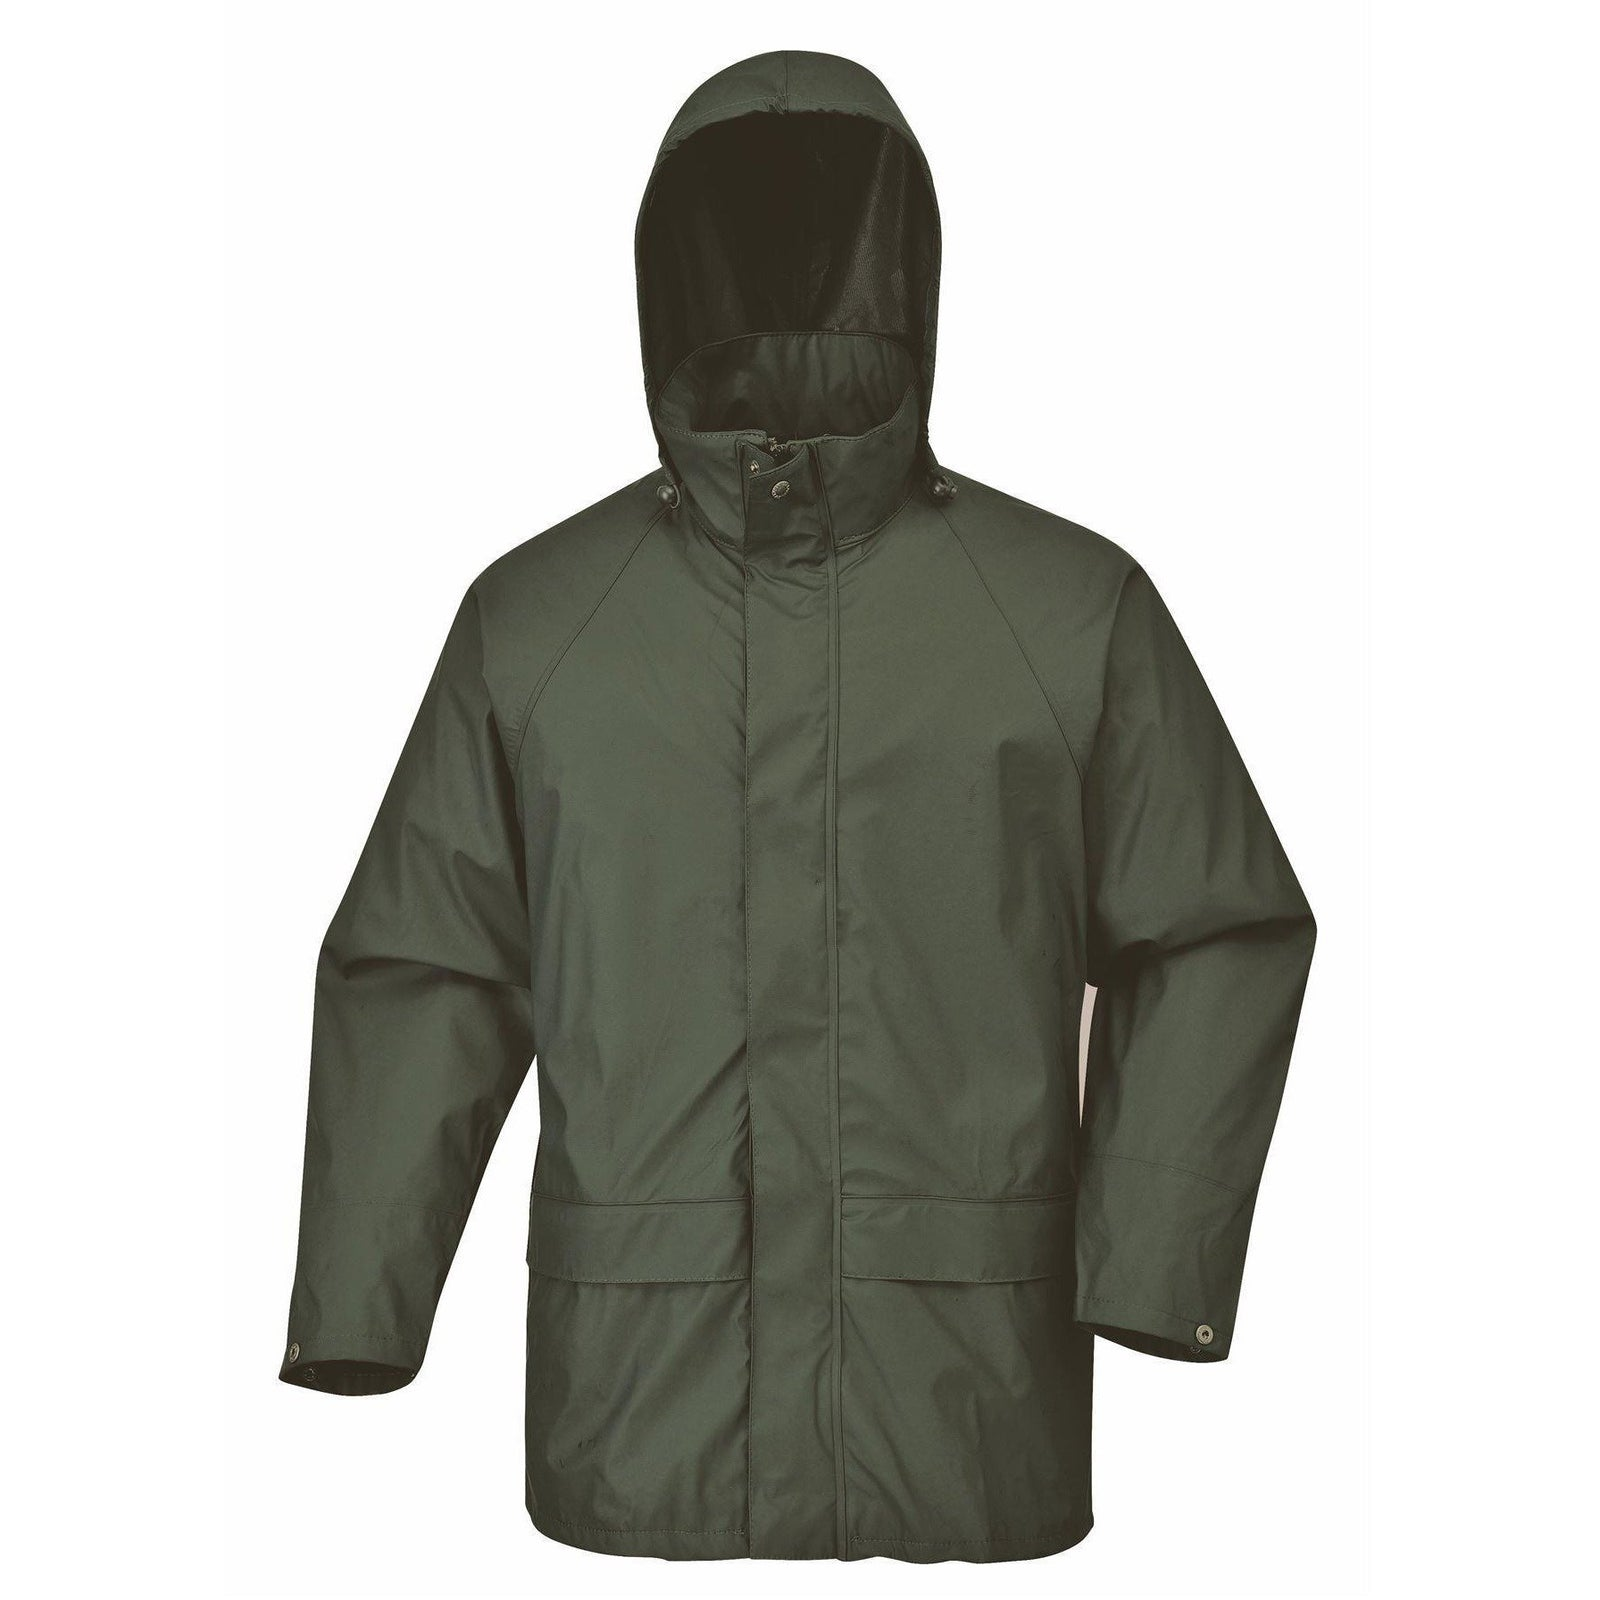 Portwest Sealtex AIR Jacket S350 - reid outdoors